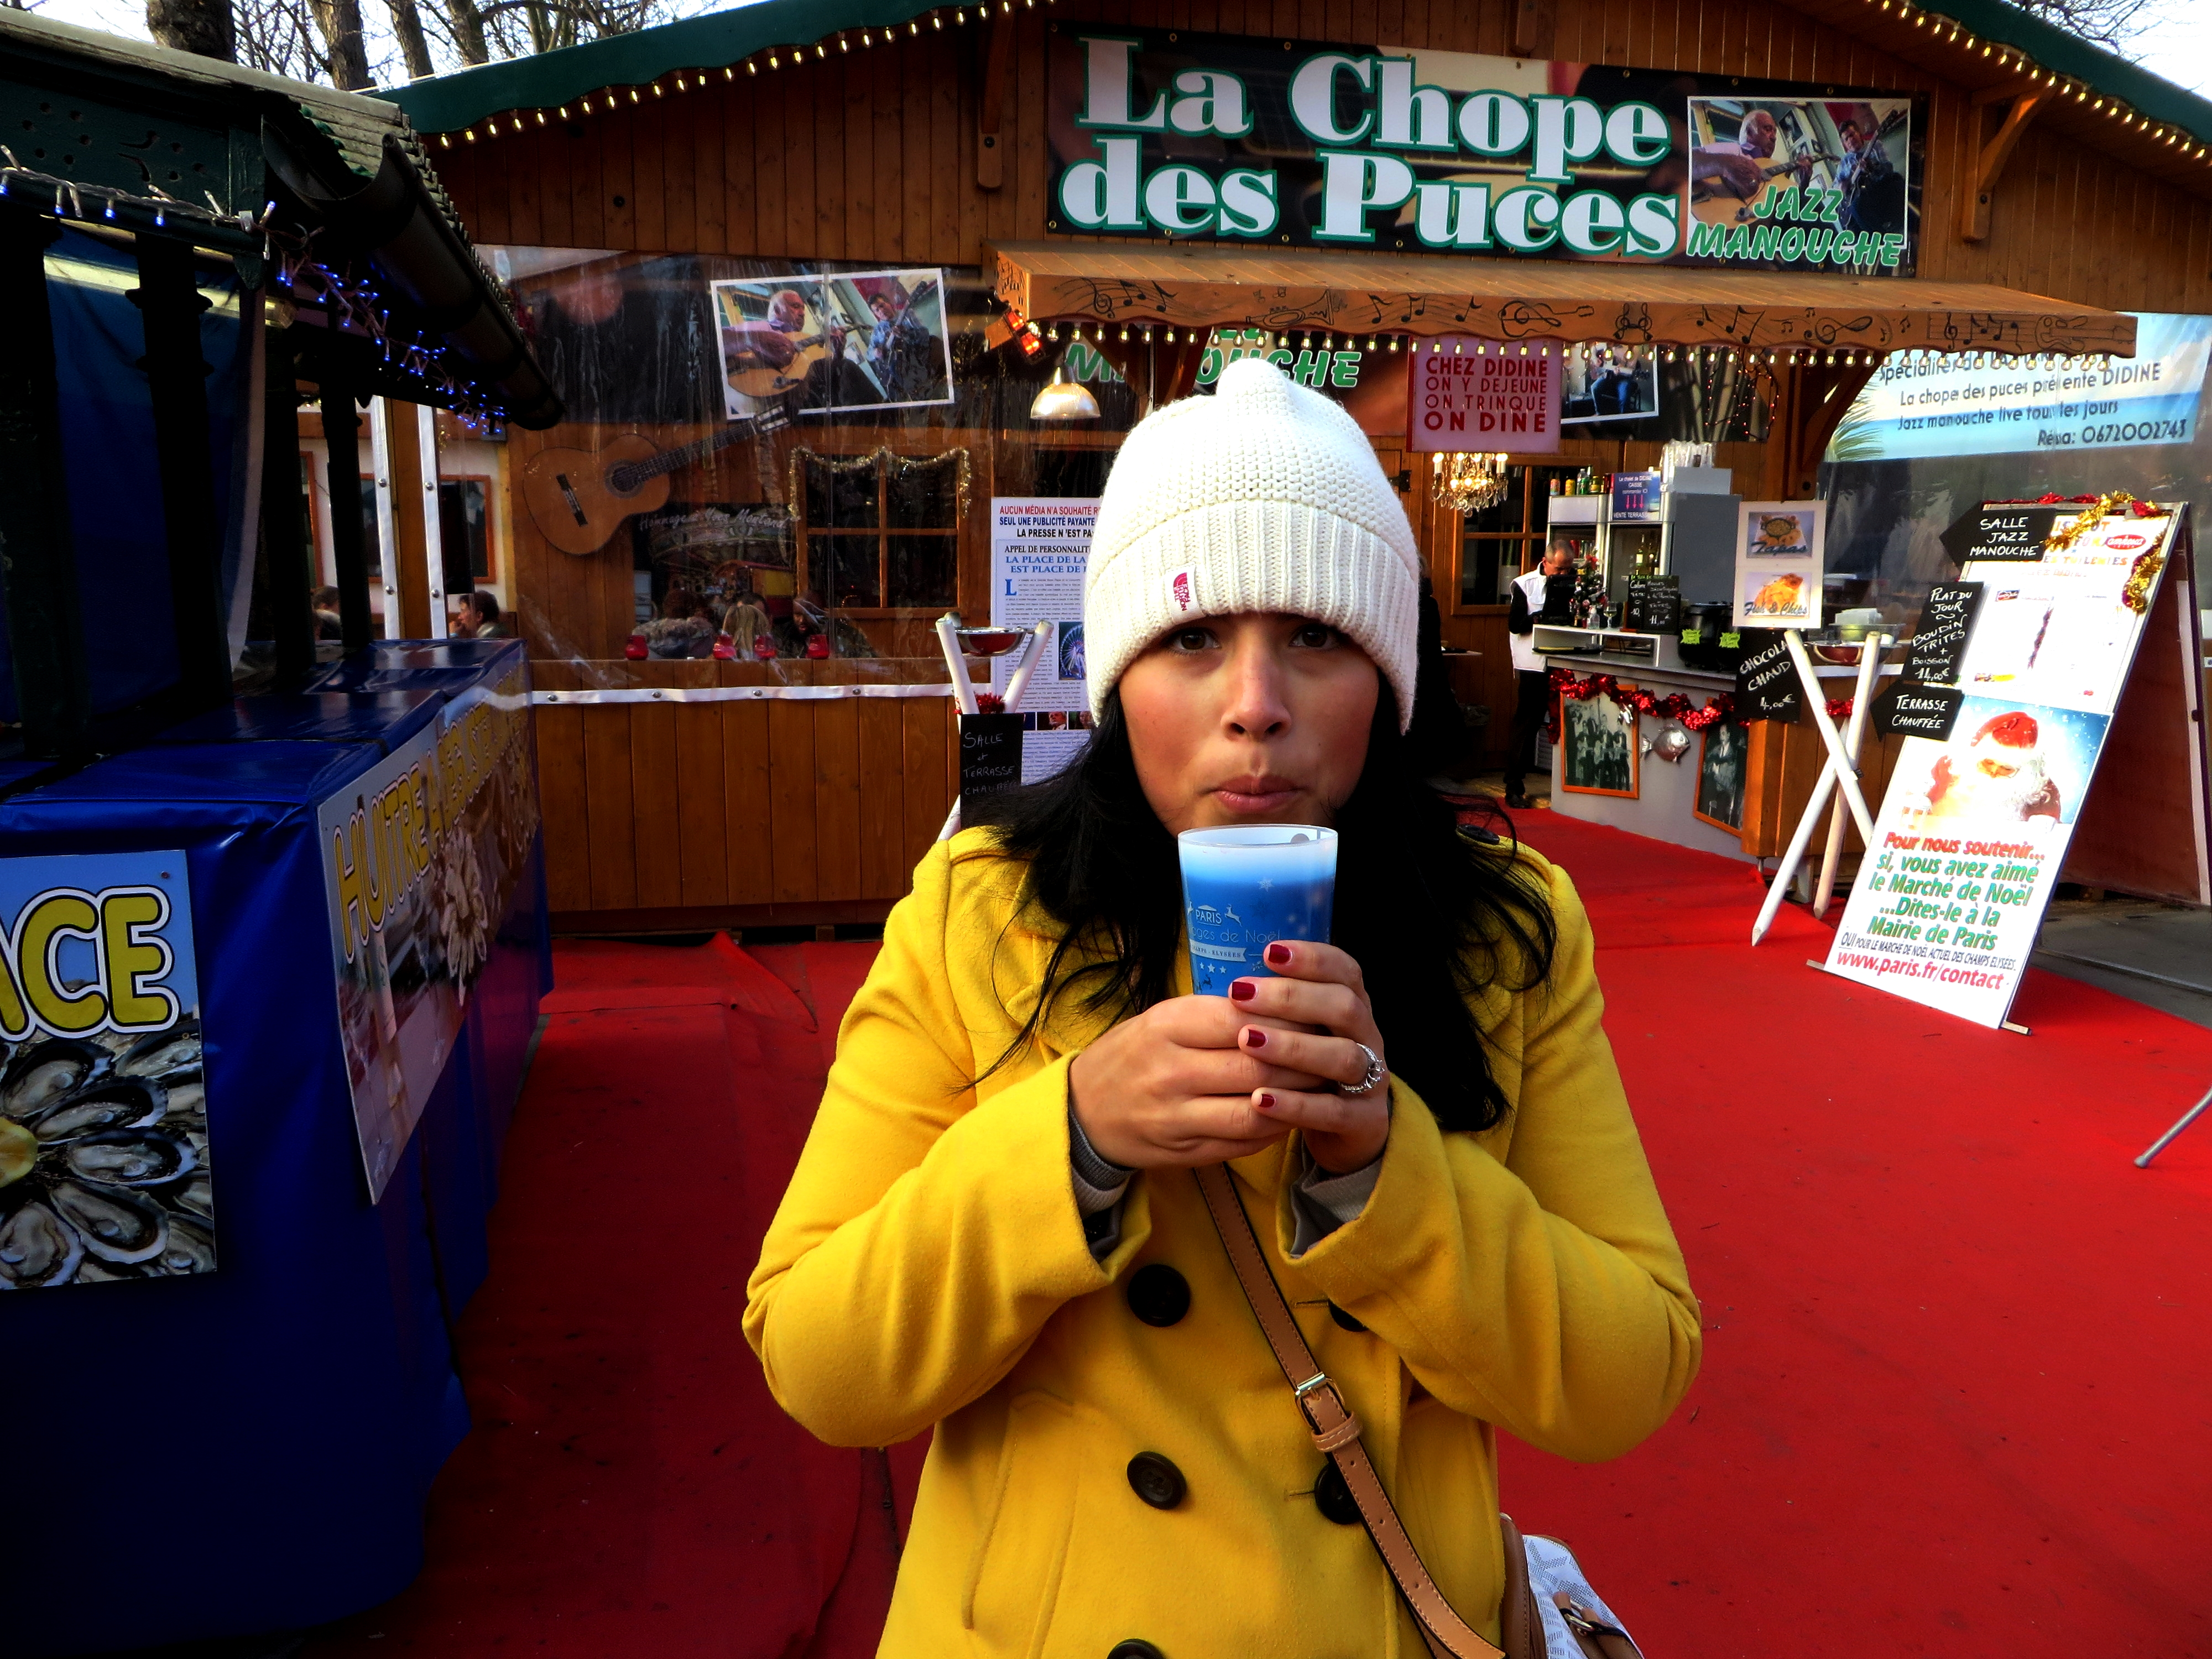 Don't forget to try your mulled wine while in Paris!